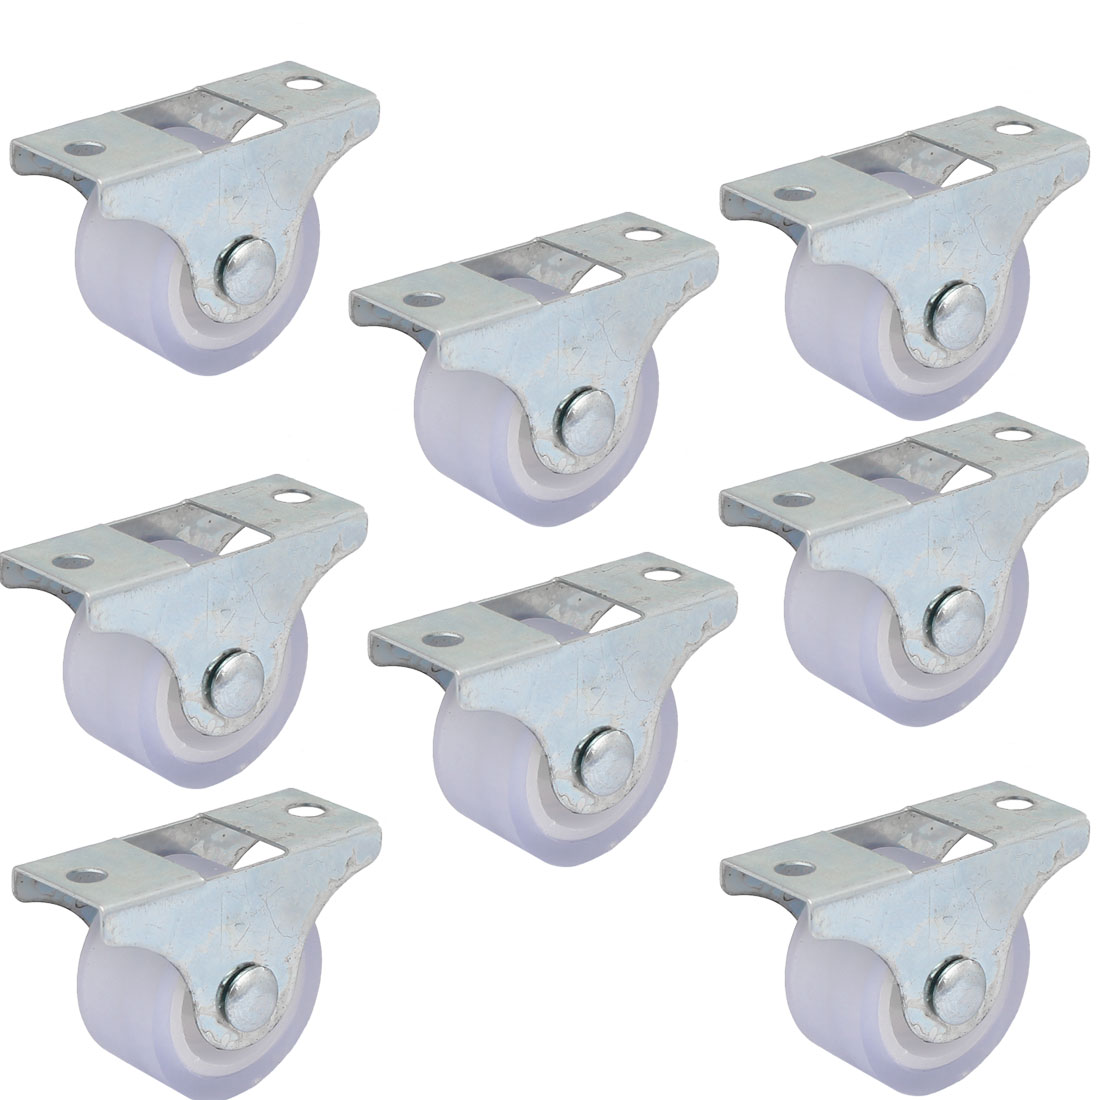 UXCELL Furniture Trolley Iron Top Plate Silent Pvc Fixed Caster Wheel 1 Inch Dia 8Pcs